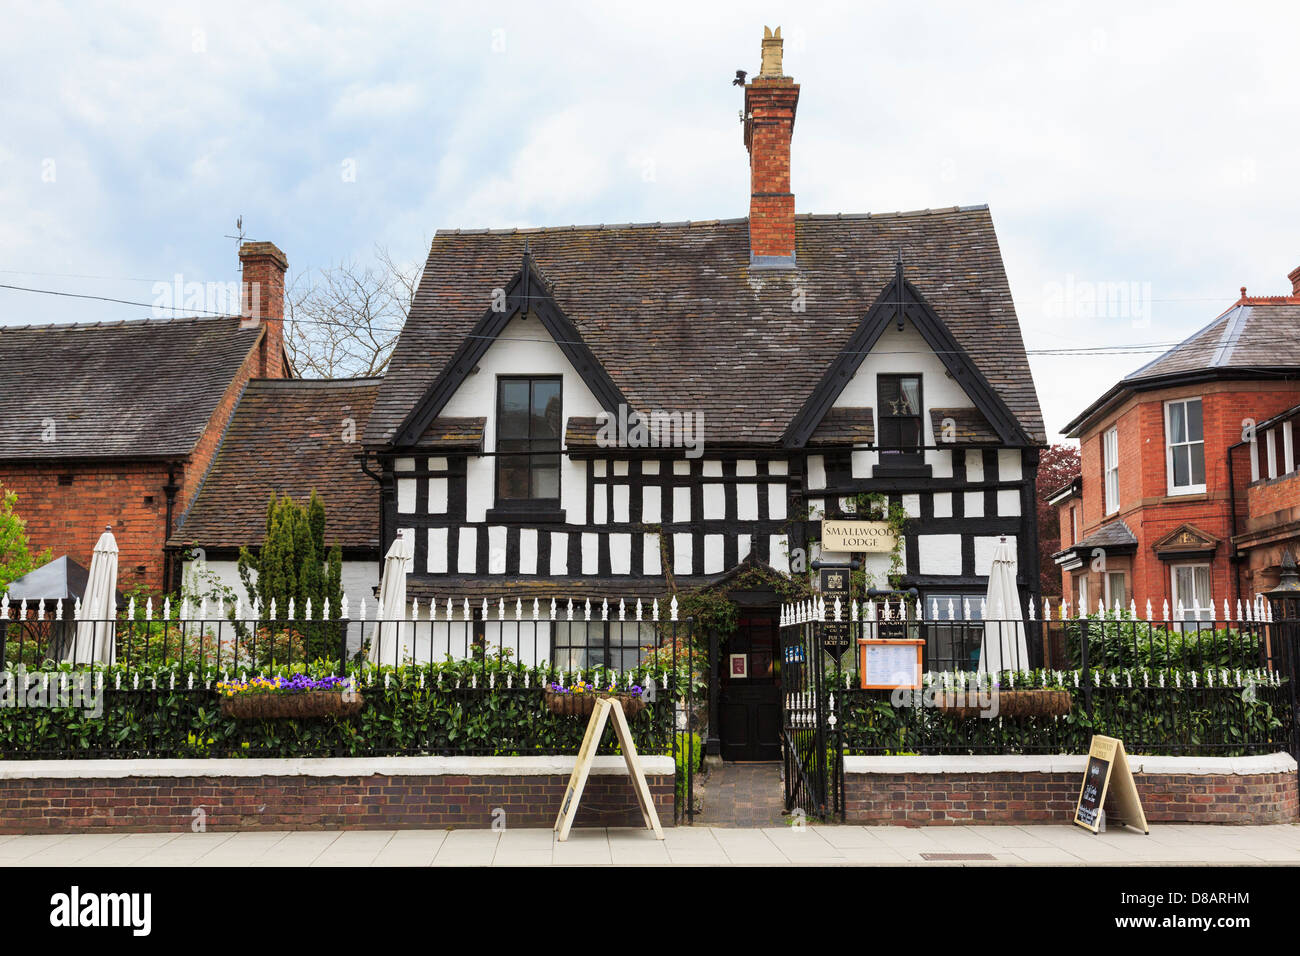 Smallwood Lodge licensed tearooms in a medieval timbered building in town centre of Newport, Shropshire, West Midlands, - Stock Image